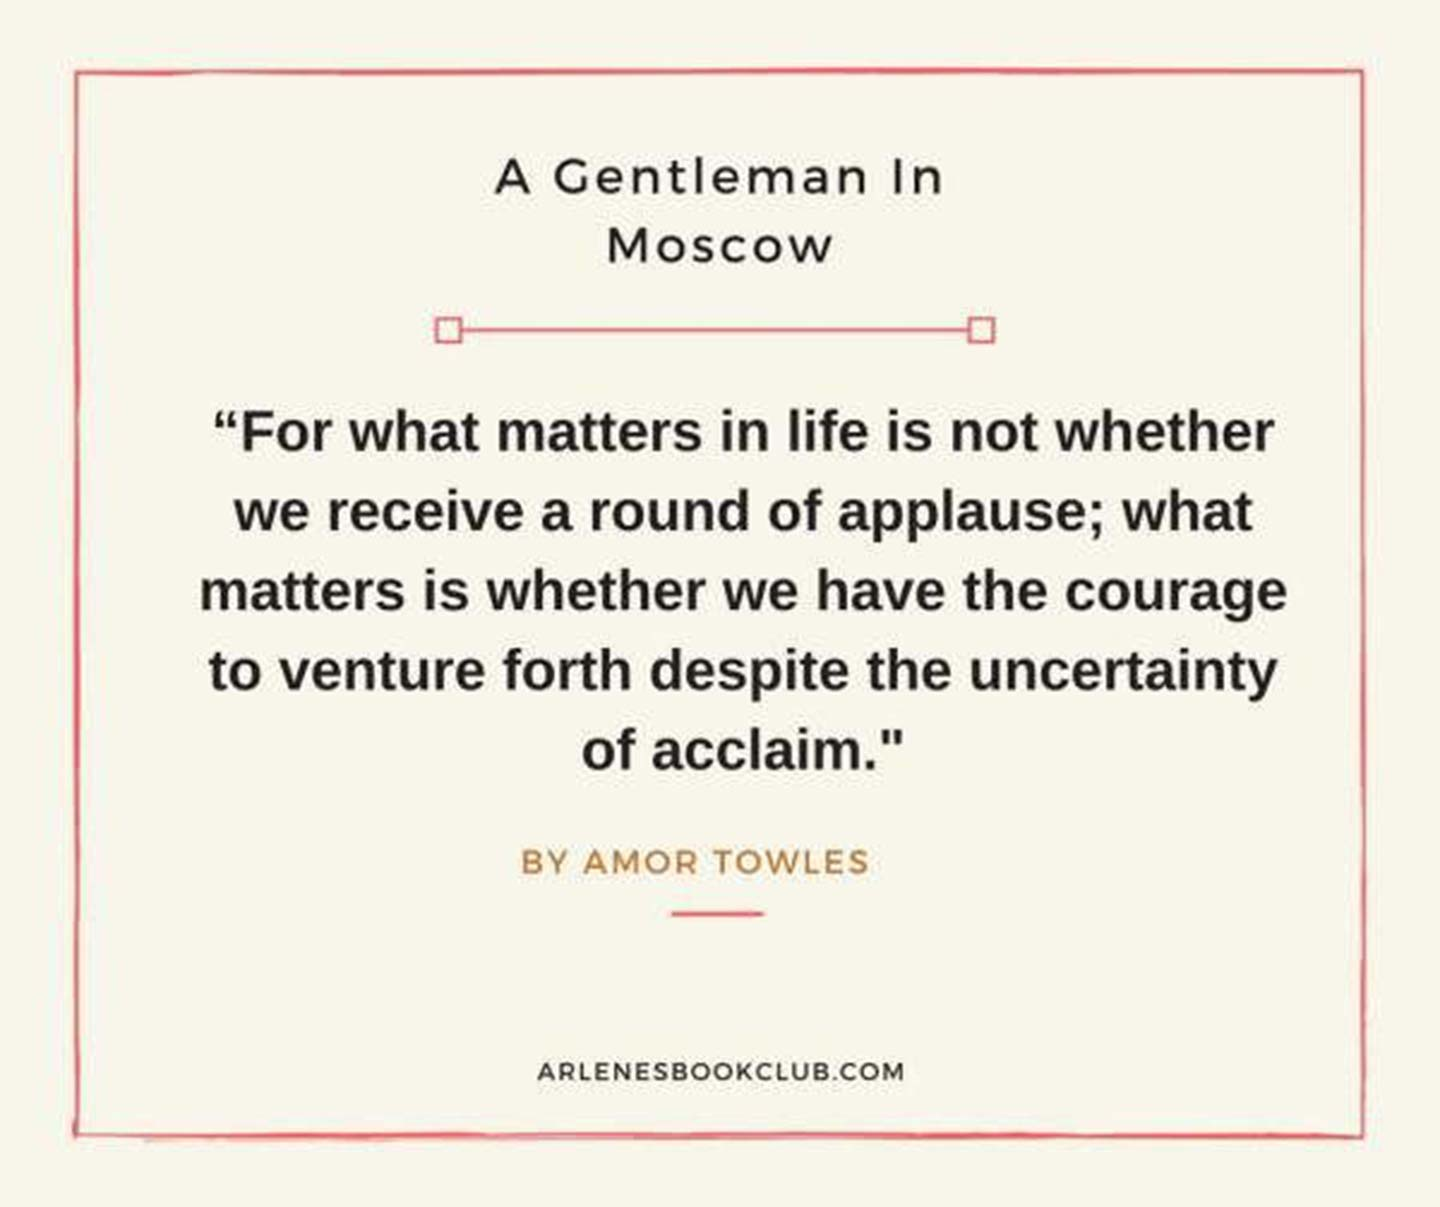 book club review december 2019 a gentleman in moscow